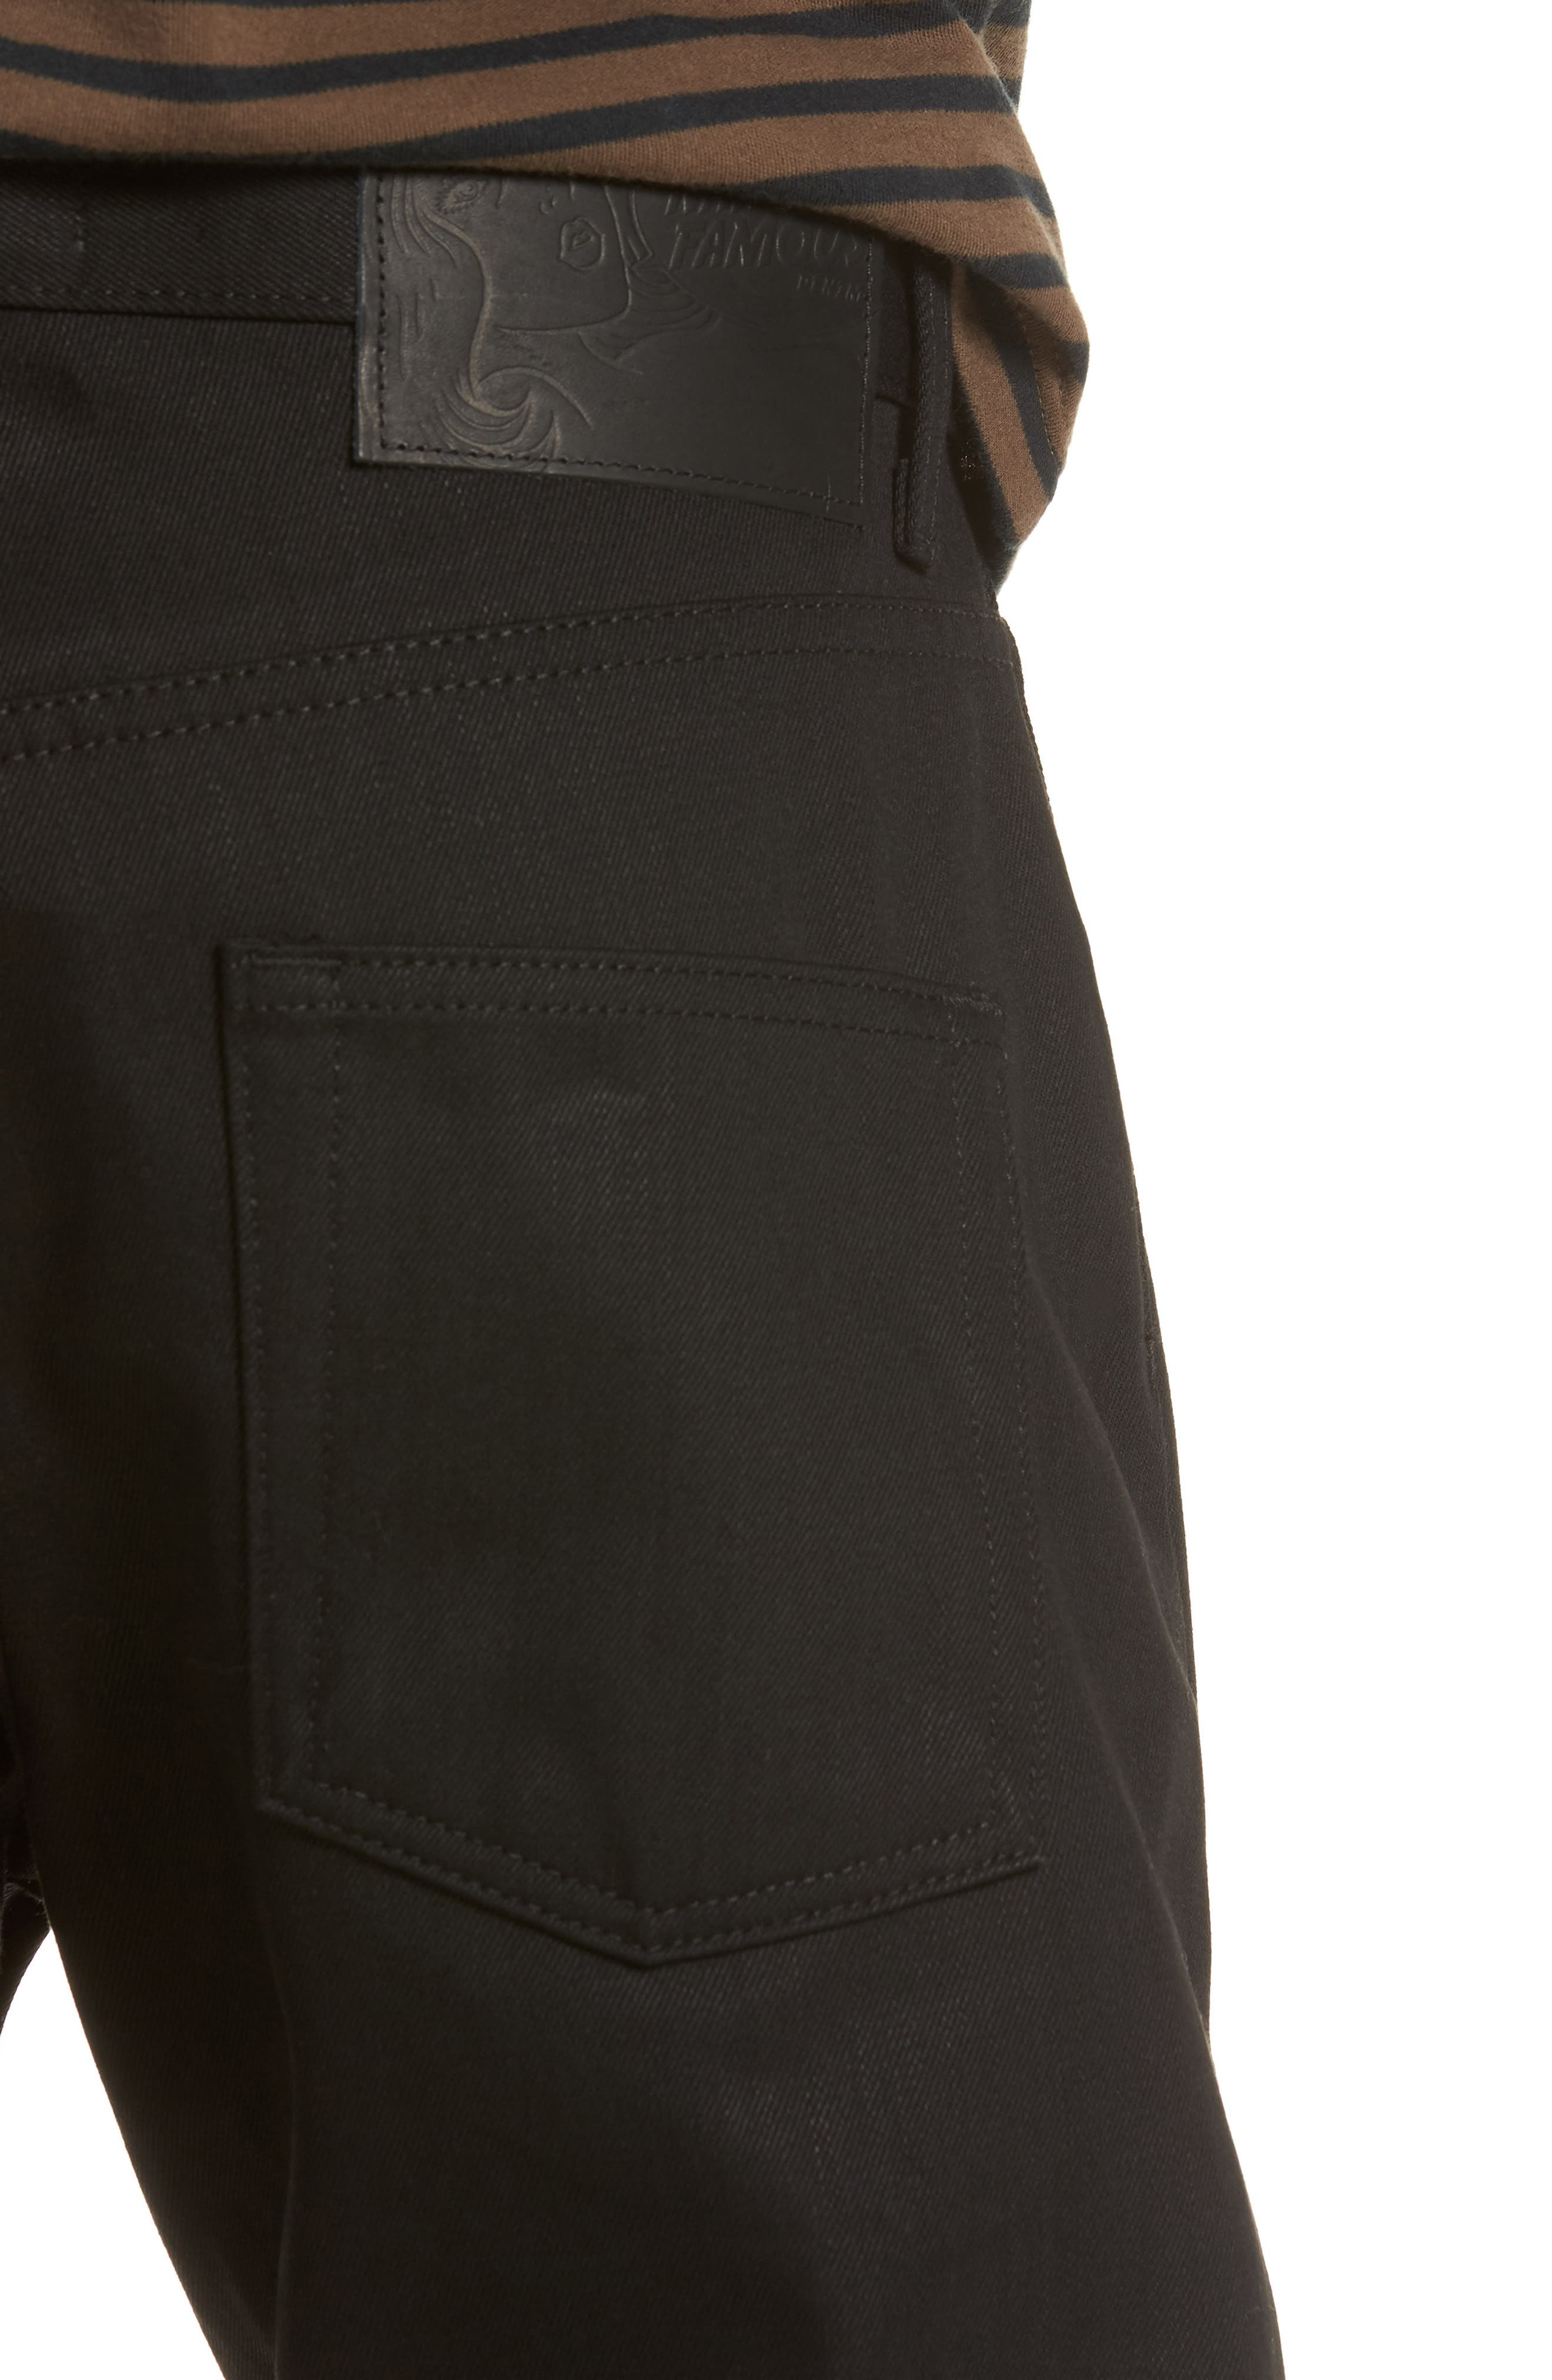 Naked & Famous Easy Guy Relaxed Fit Jeans,                             Alternate thumbnail 4, color,                             Solid Black Selvedge